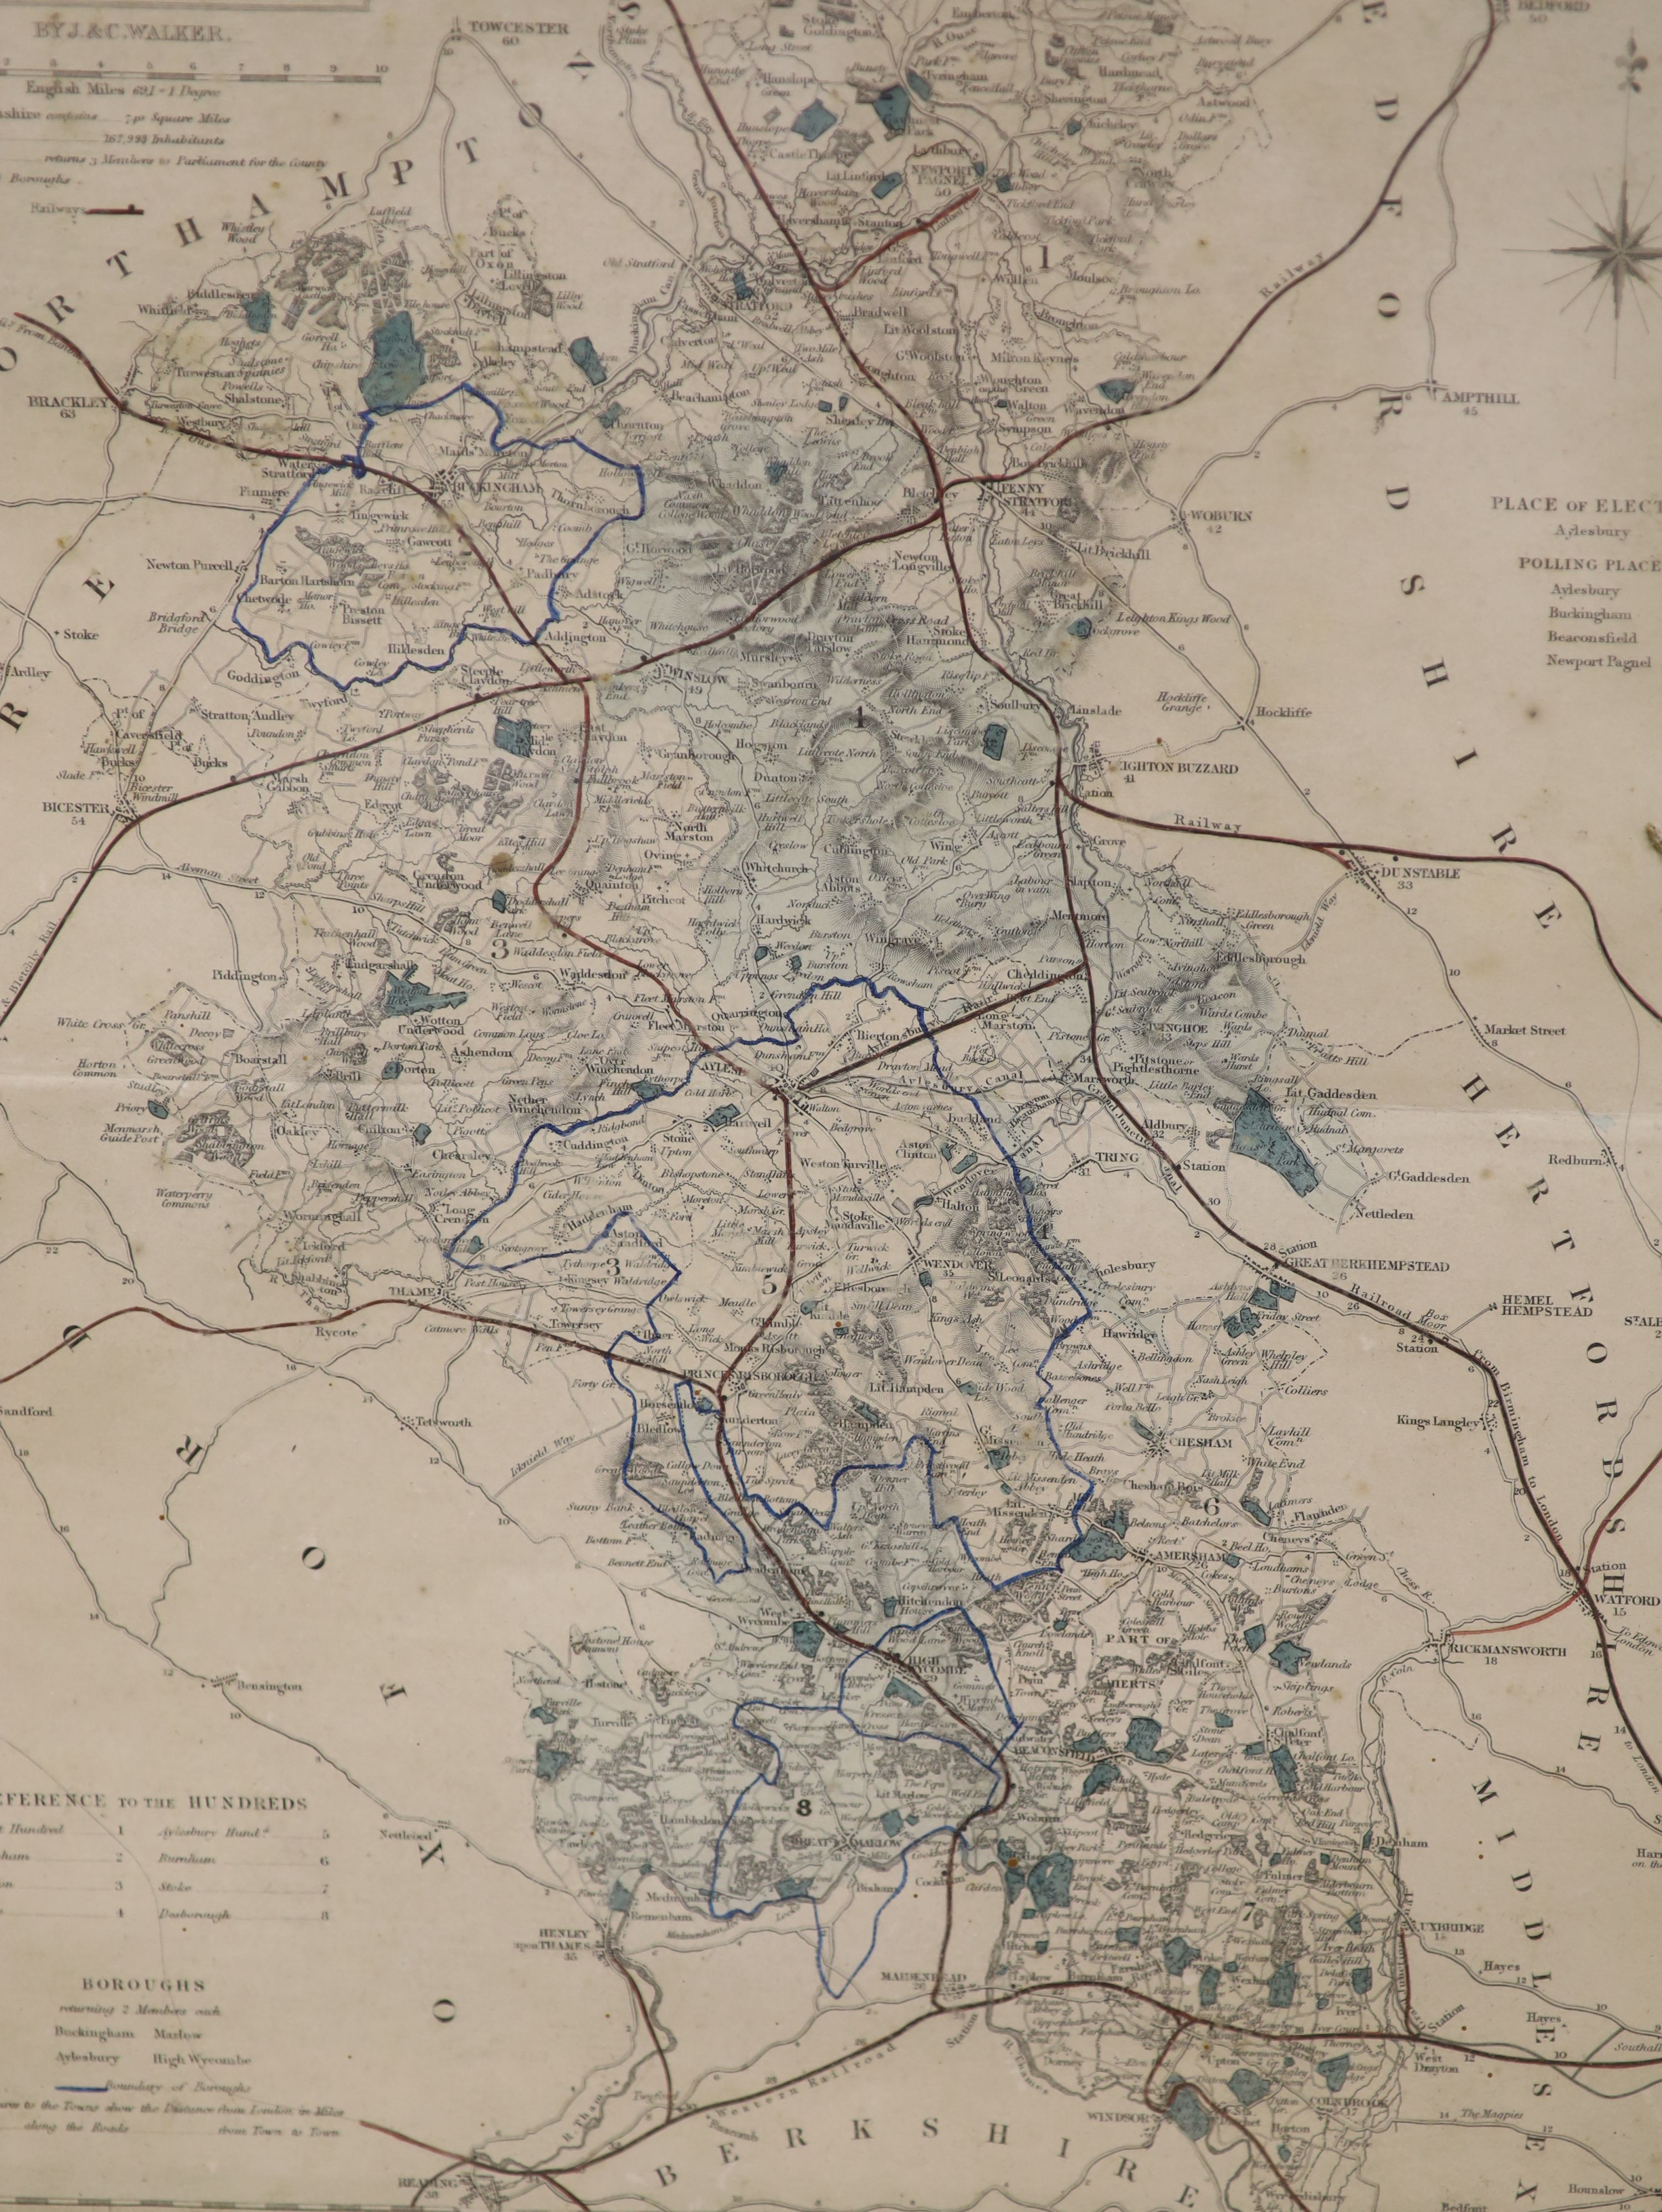 Robert Mordan, two coloured engravings, Maps of Sussex and Midlesex, together with two later - Image 5 of 5